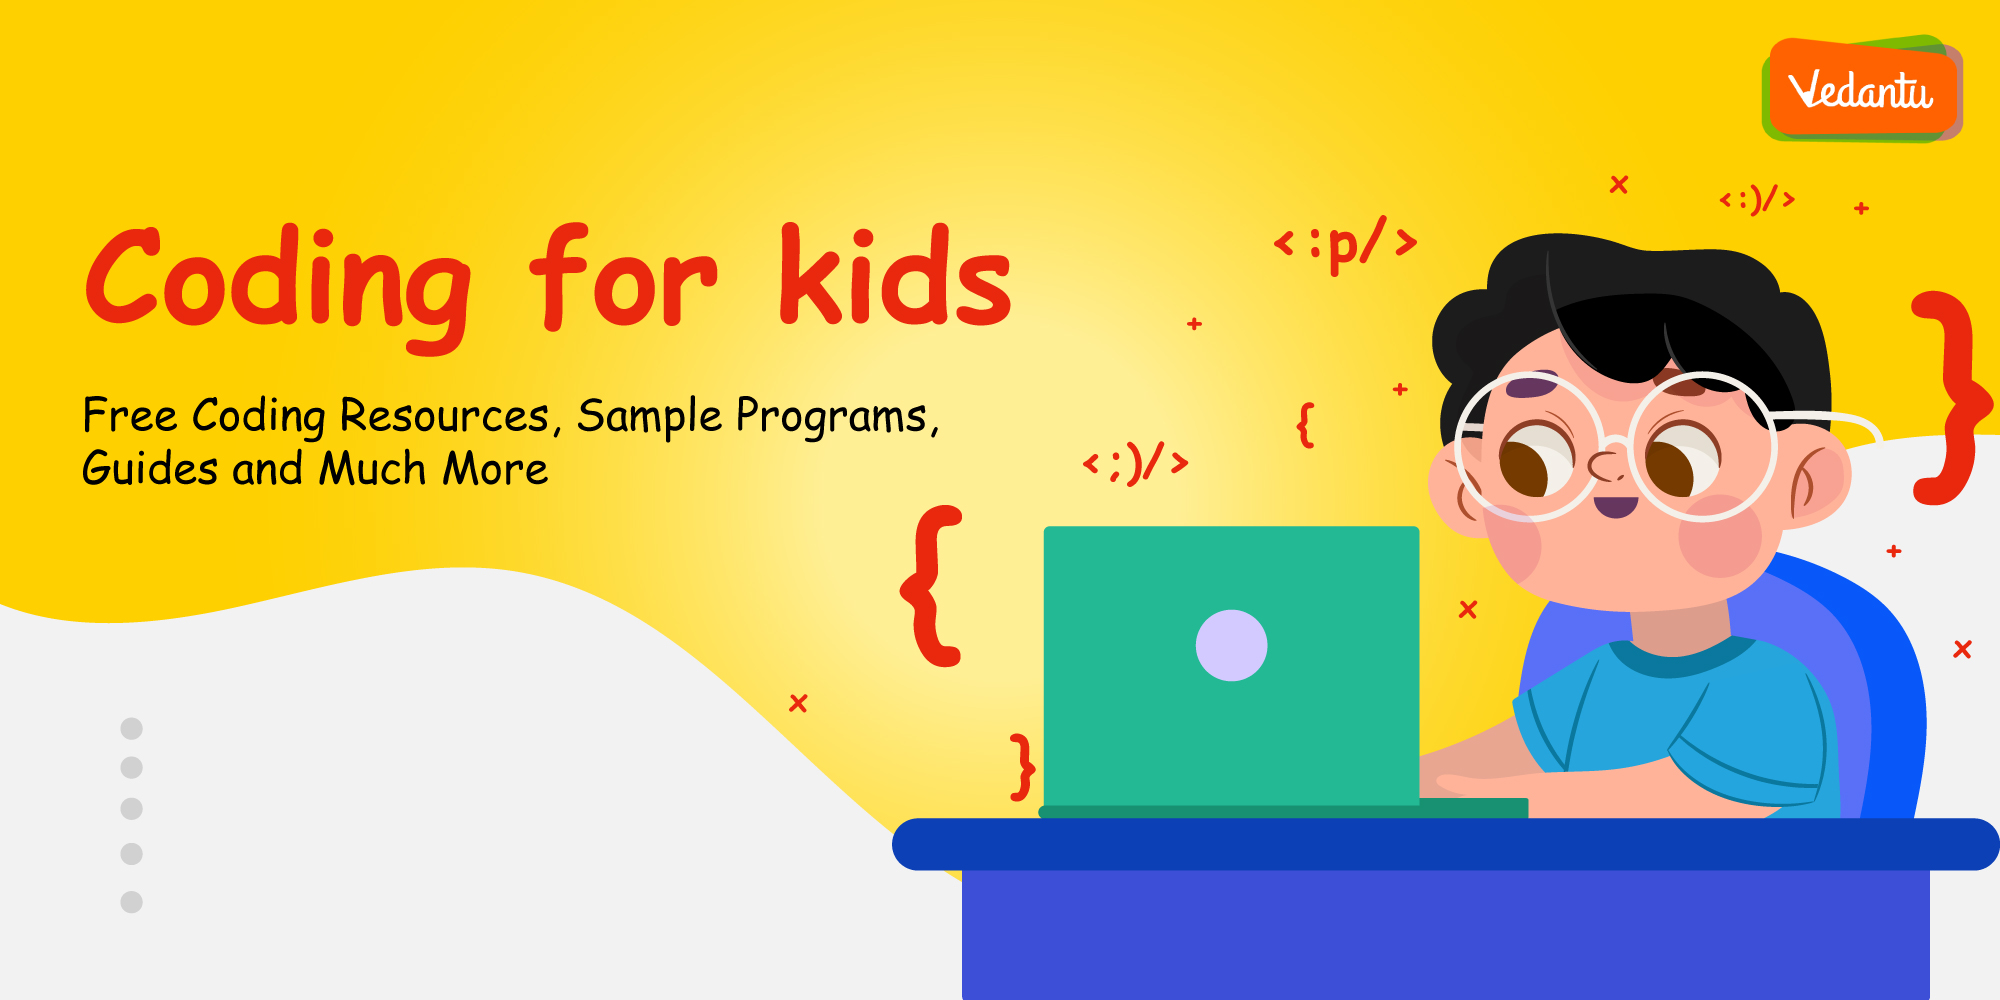 10 Creative Ways to Get Your Kids Excited About Coding